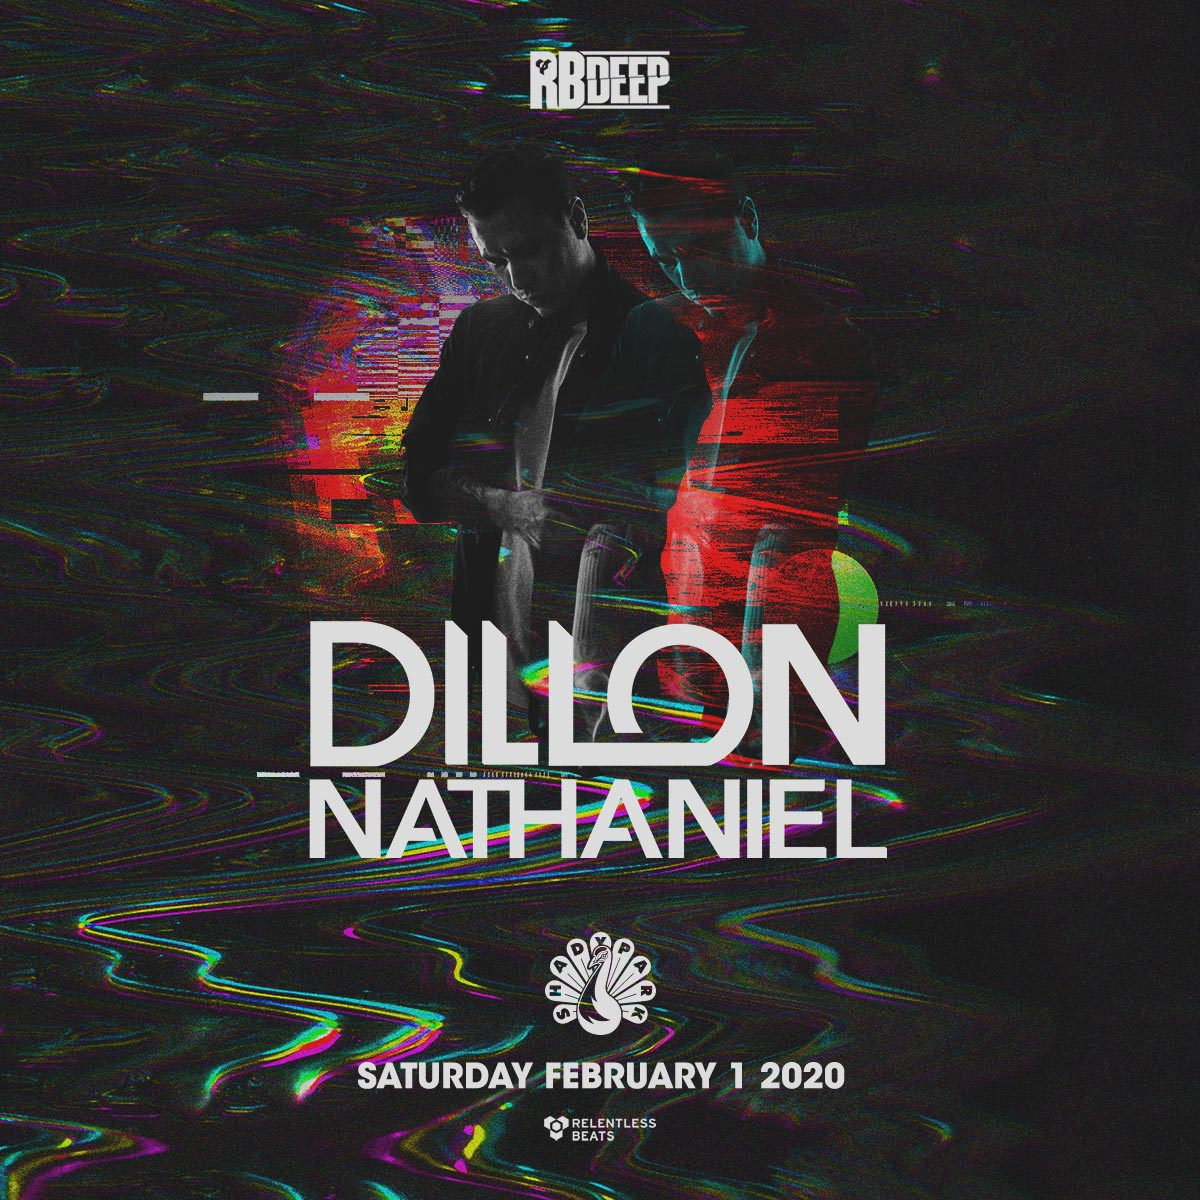 Flyer for Dillon Nathaniel